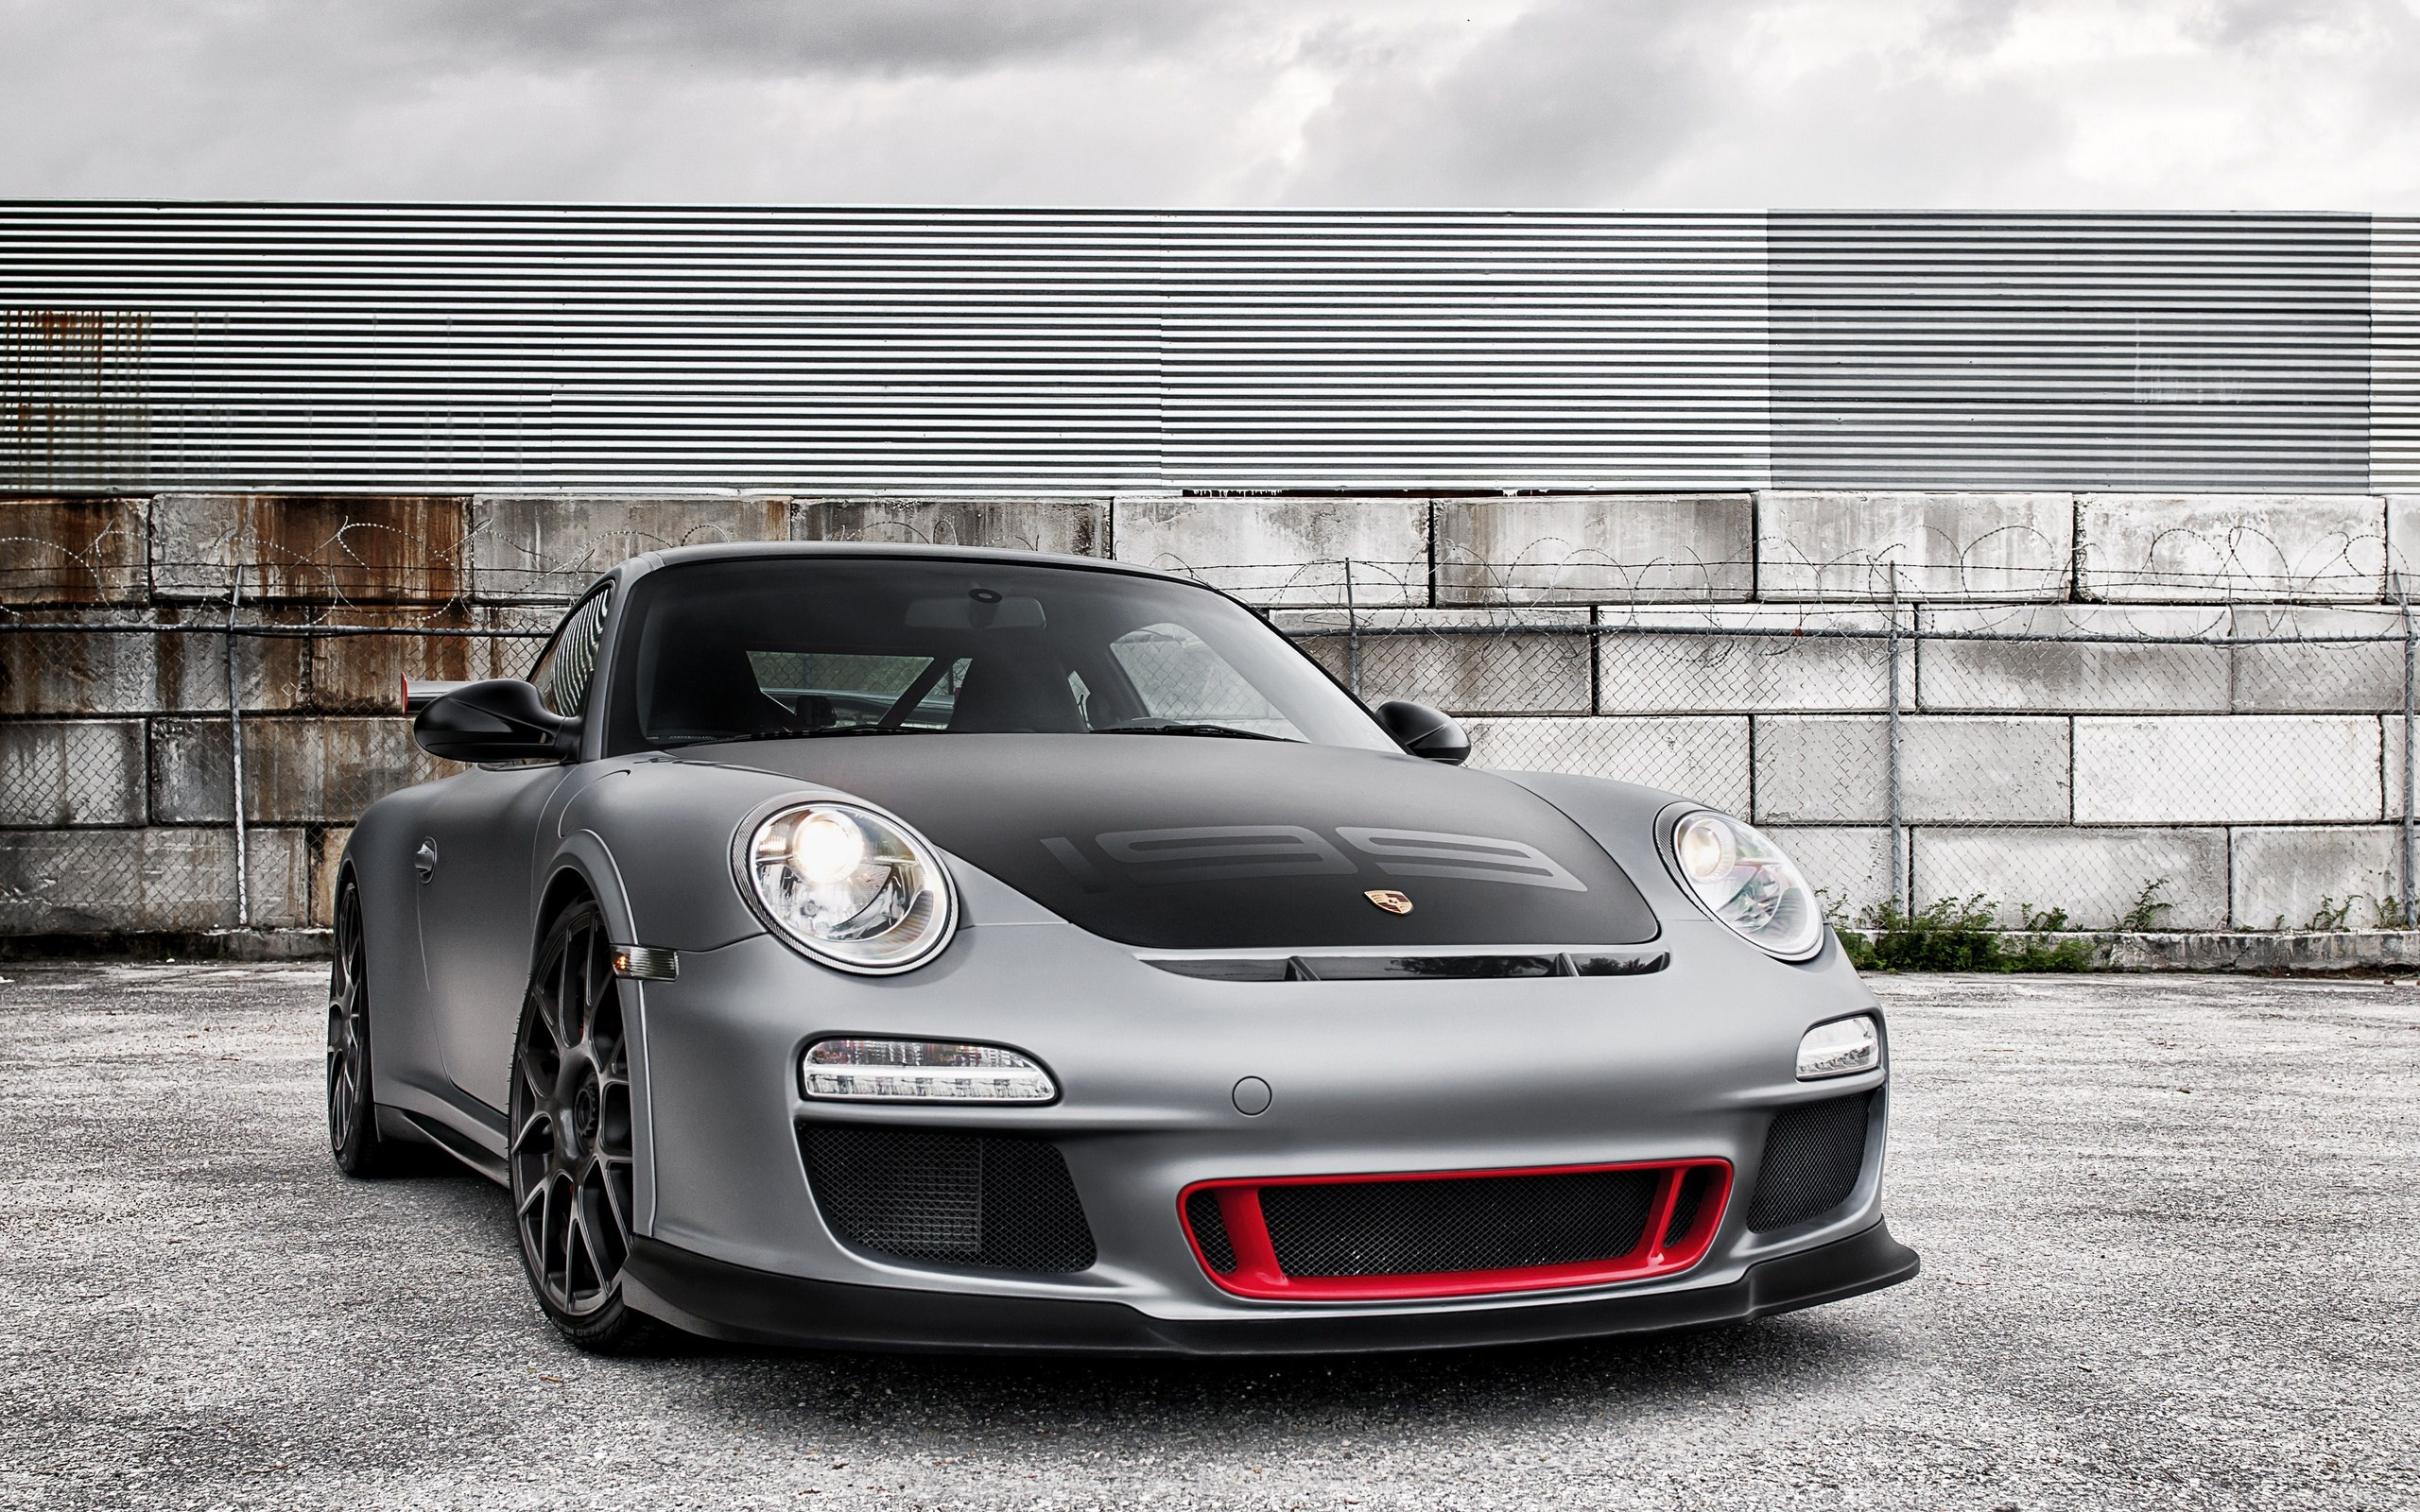 cars matte porsche 911 gt3 Porsche 911 GT3 RS HD Wallpaper